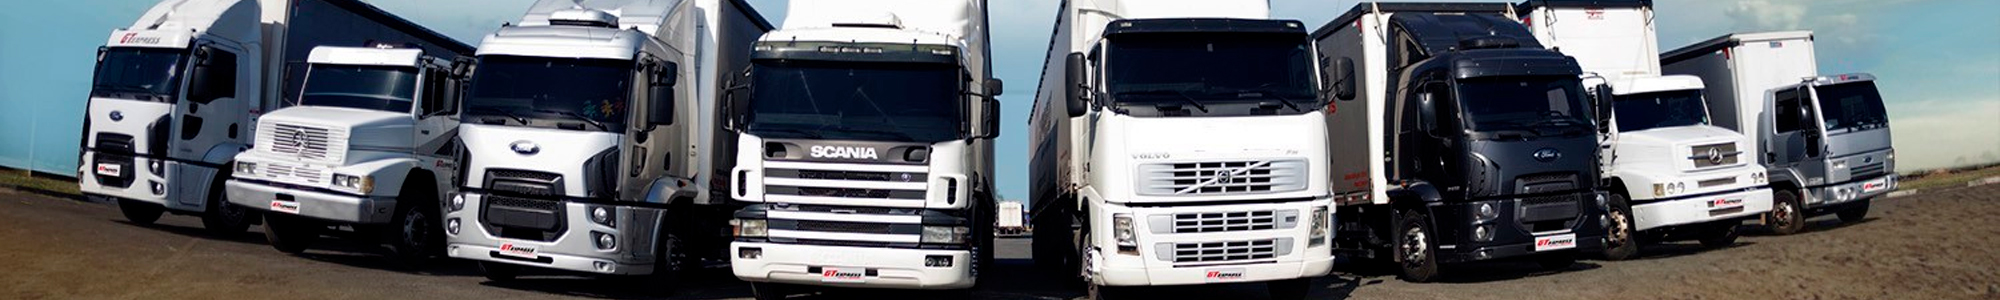 Fleet Management and Control